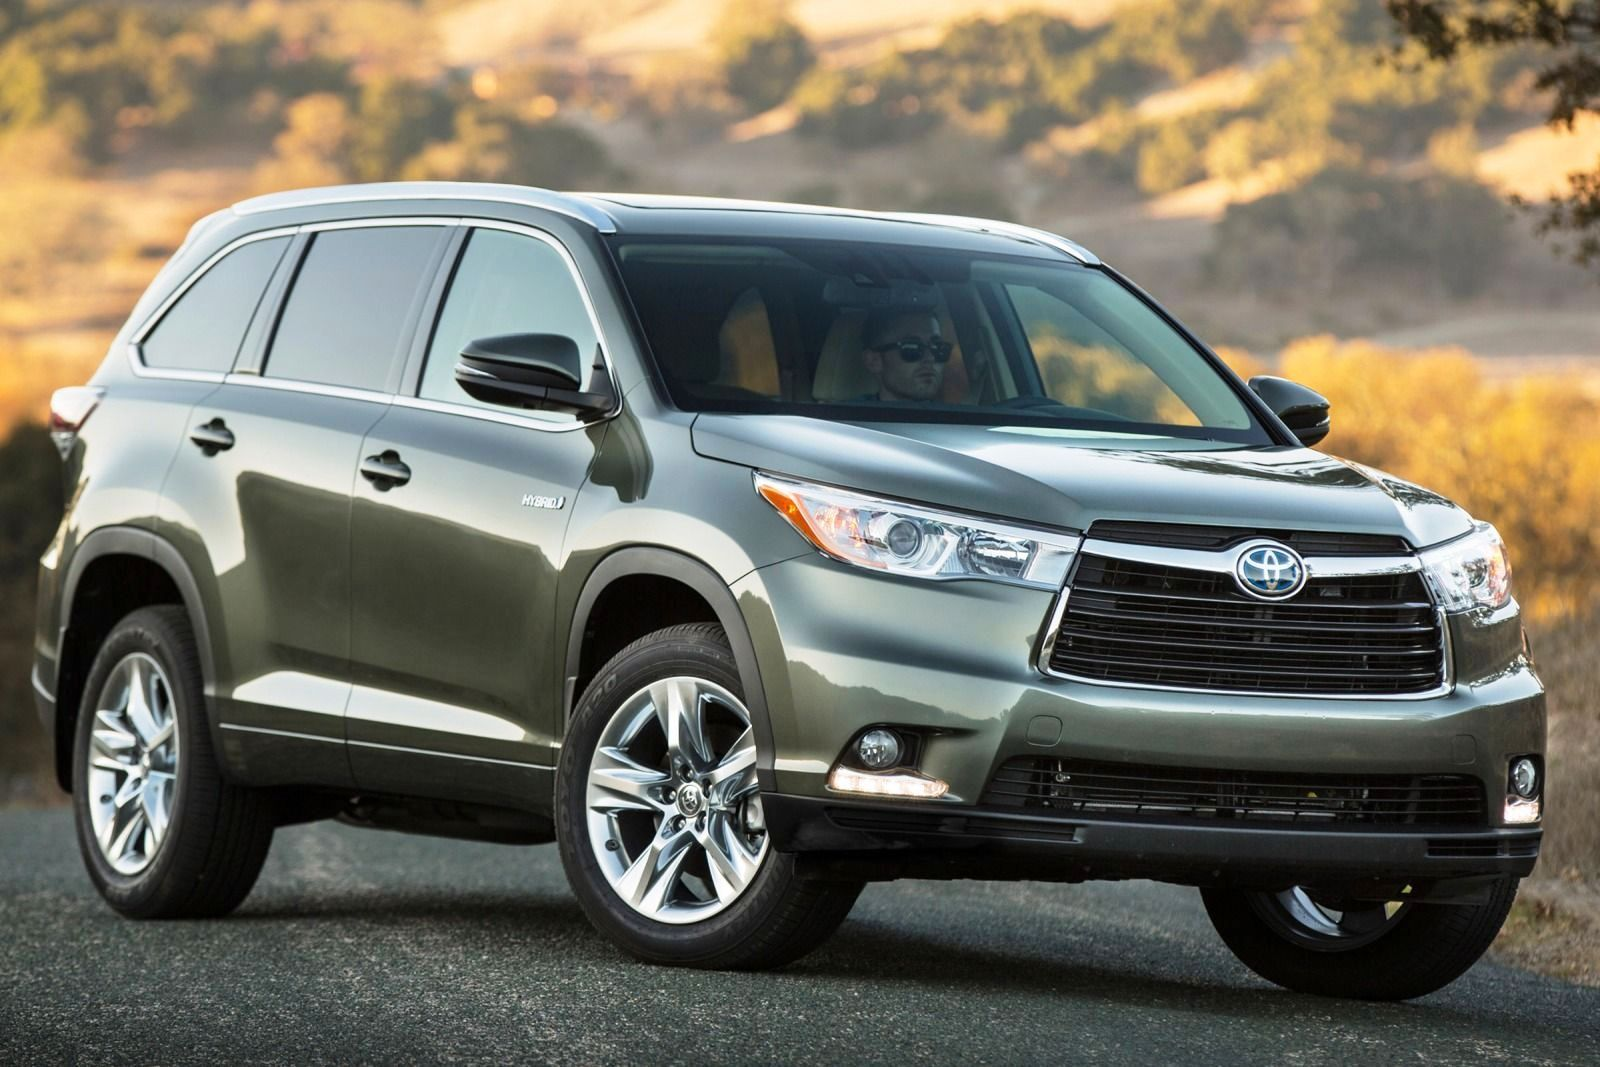 New Toyota Suv Prices Msrp Specs Reviews Price List And